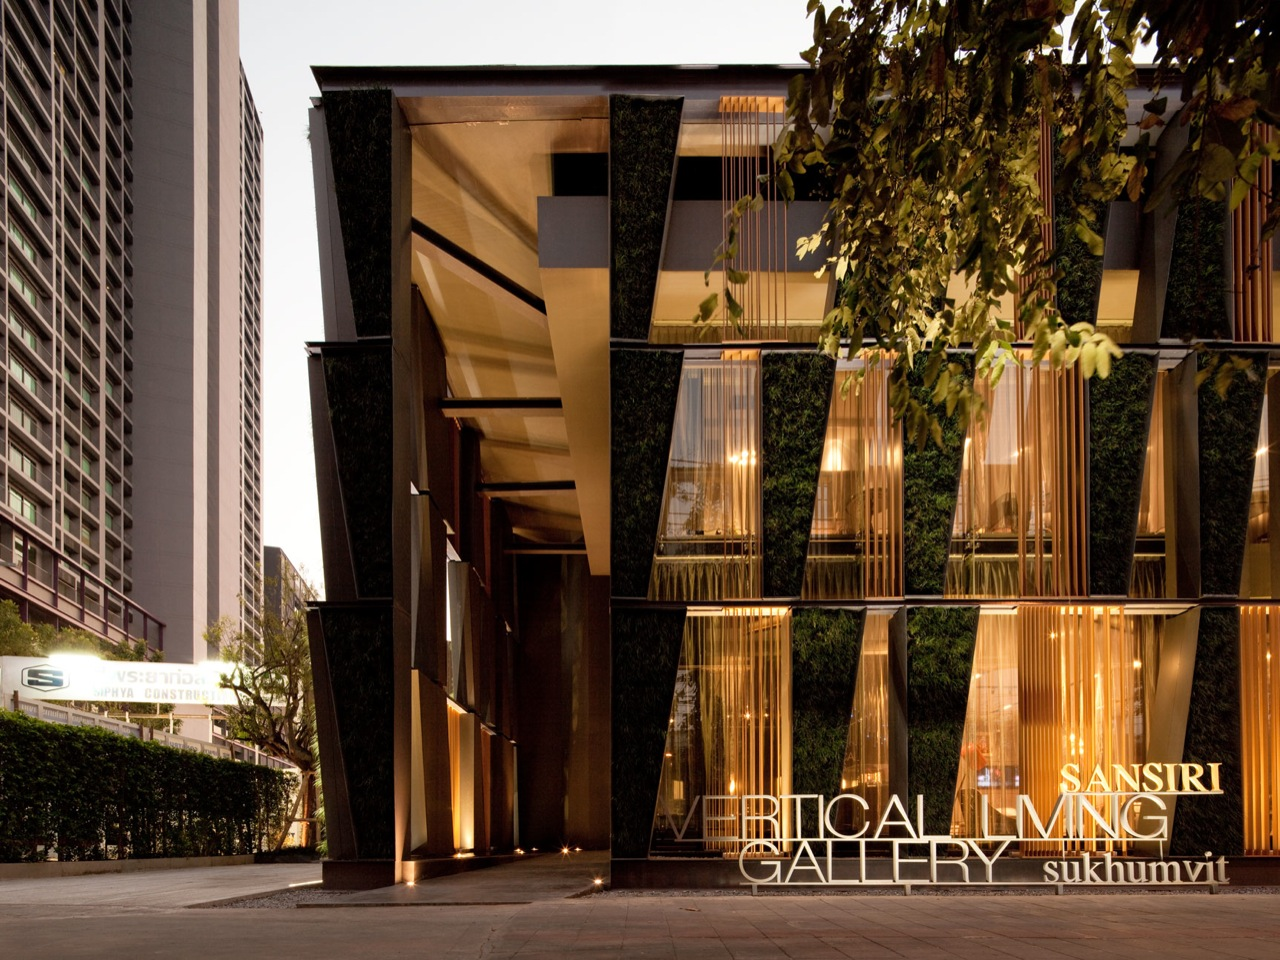 Amazing Green Urban Architecture-The Vertical Living Gallery in Bangkok by Sansiri and Shma Homesthetics